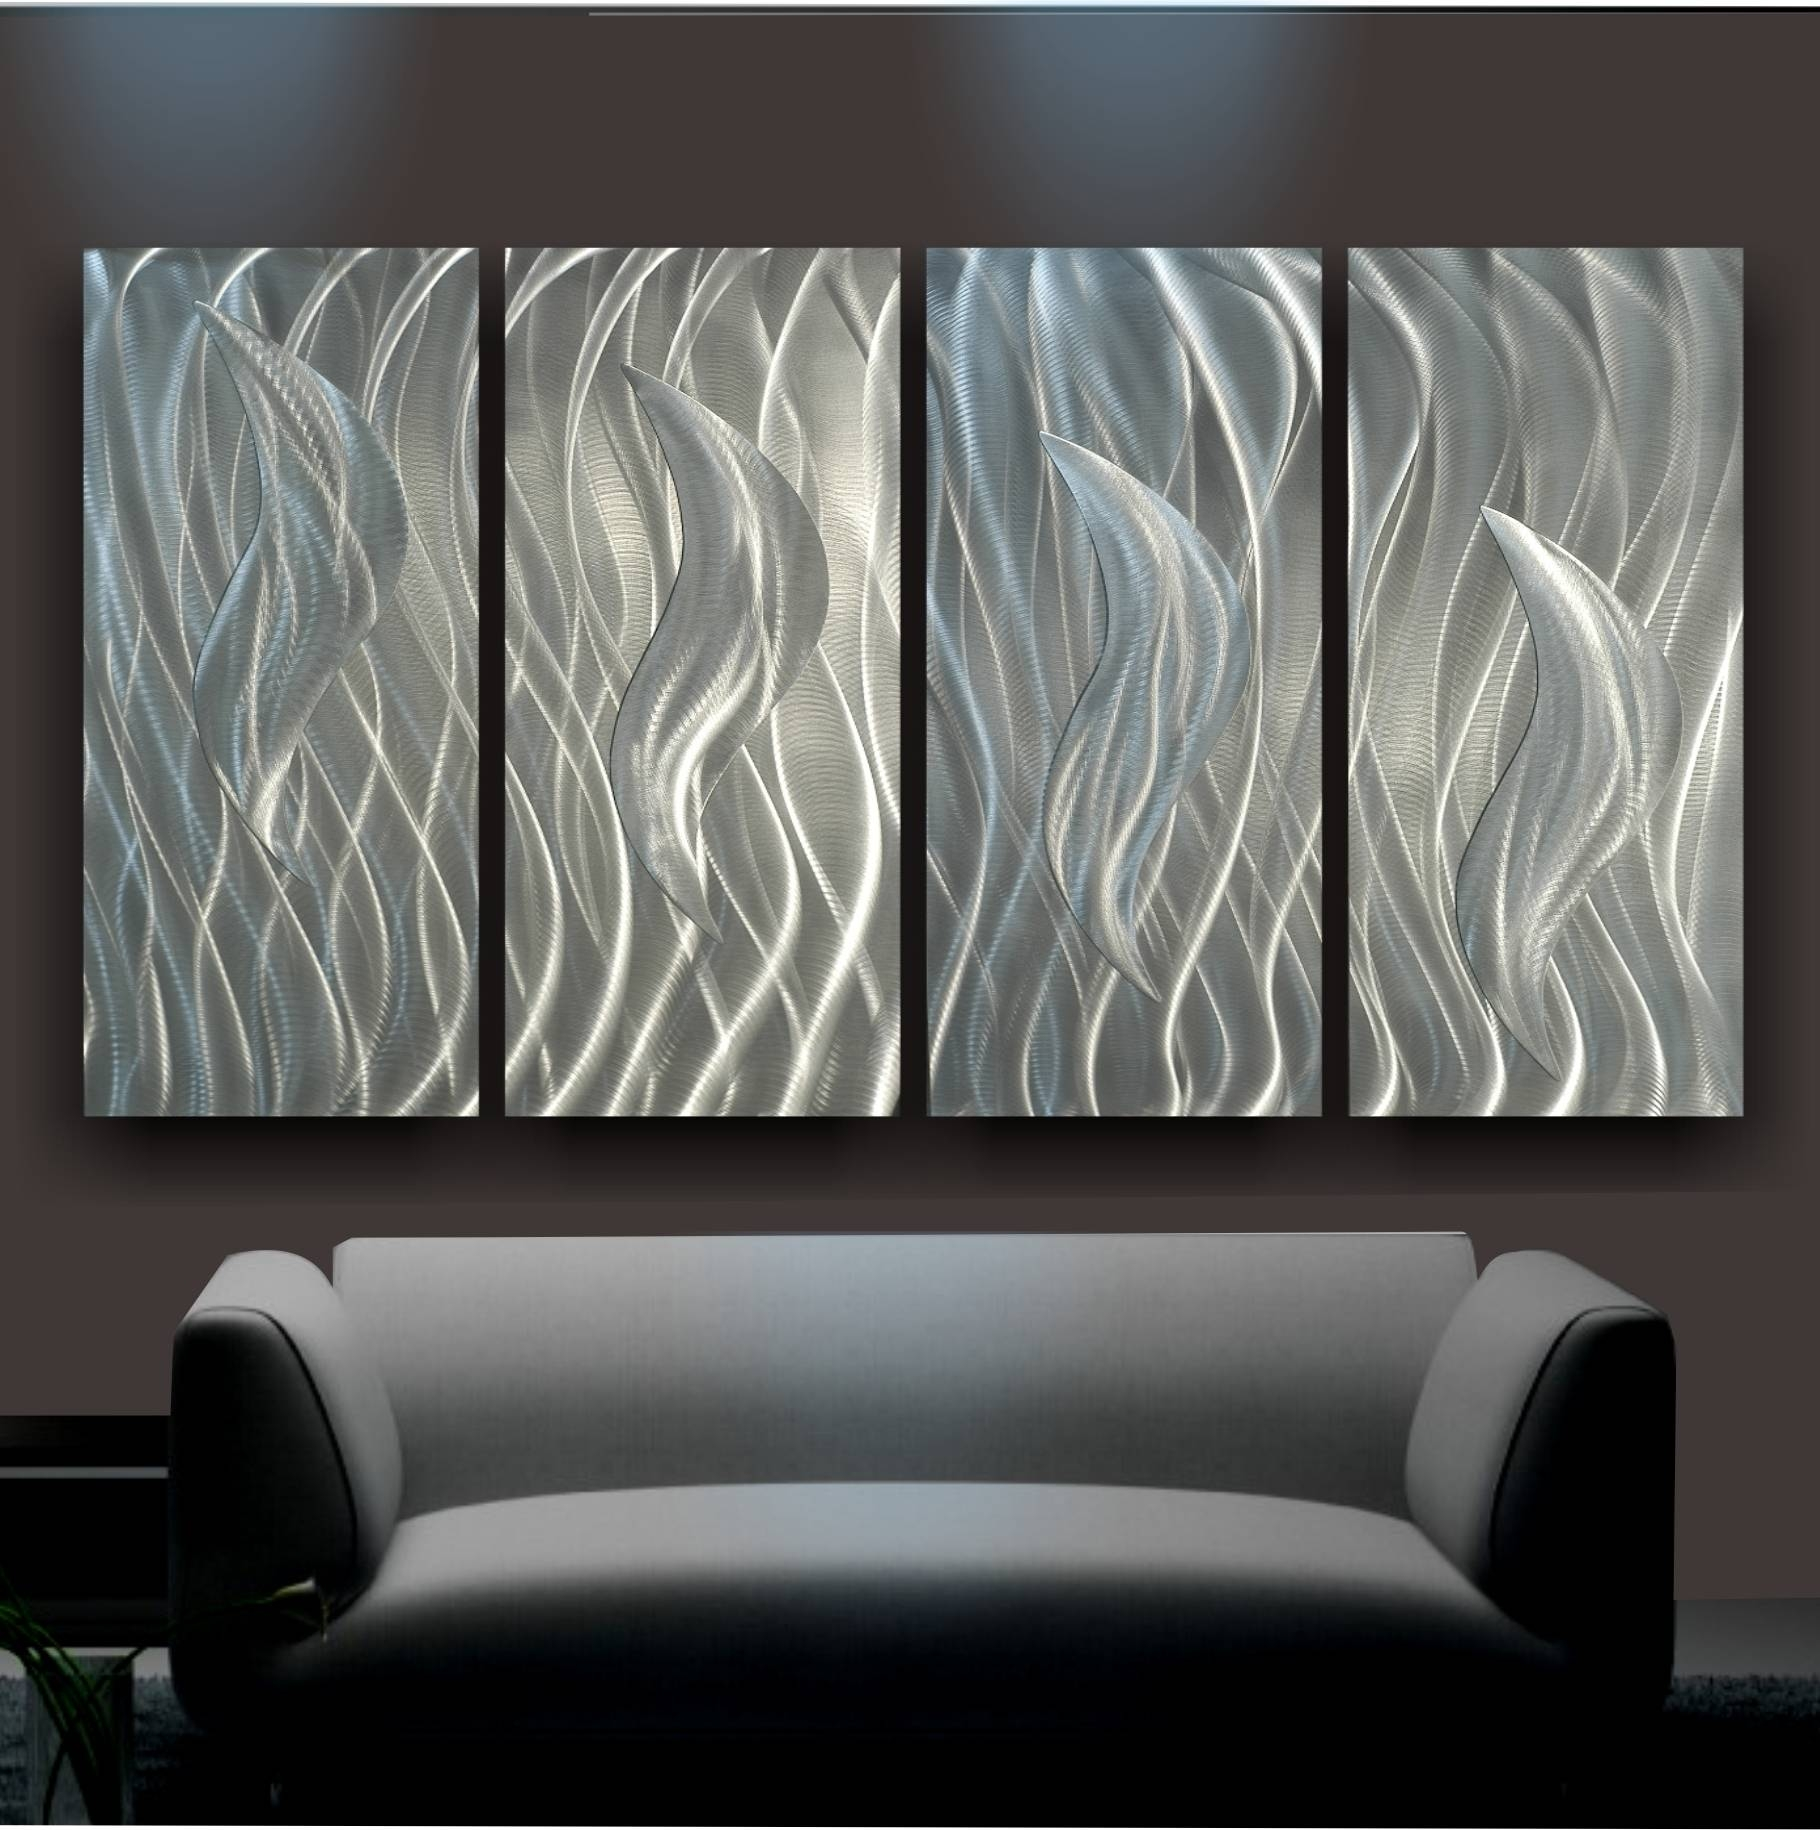 Popular Metal Wall Art — Jen & Joes Design Regarding Most Up To Date Metal Wall Art For Living Room (View 14 of 20)